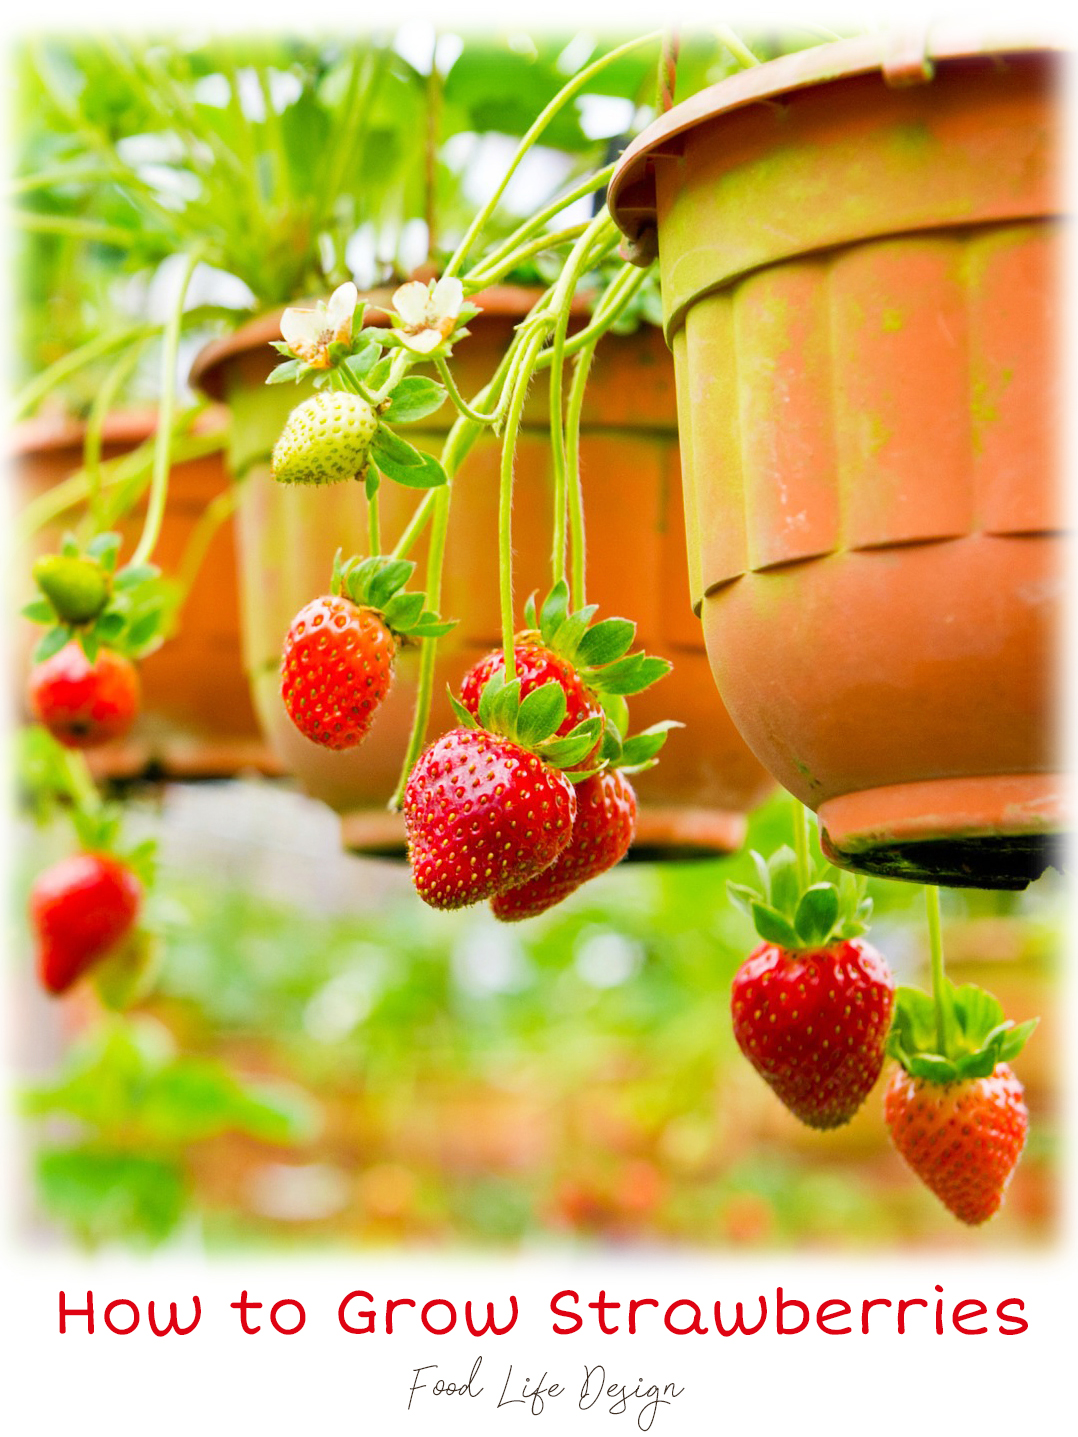 How to Grow Strawberries in a Pot - Food Life Design